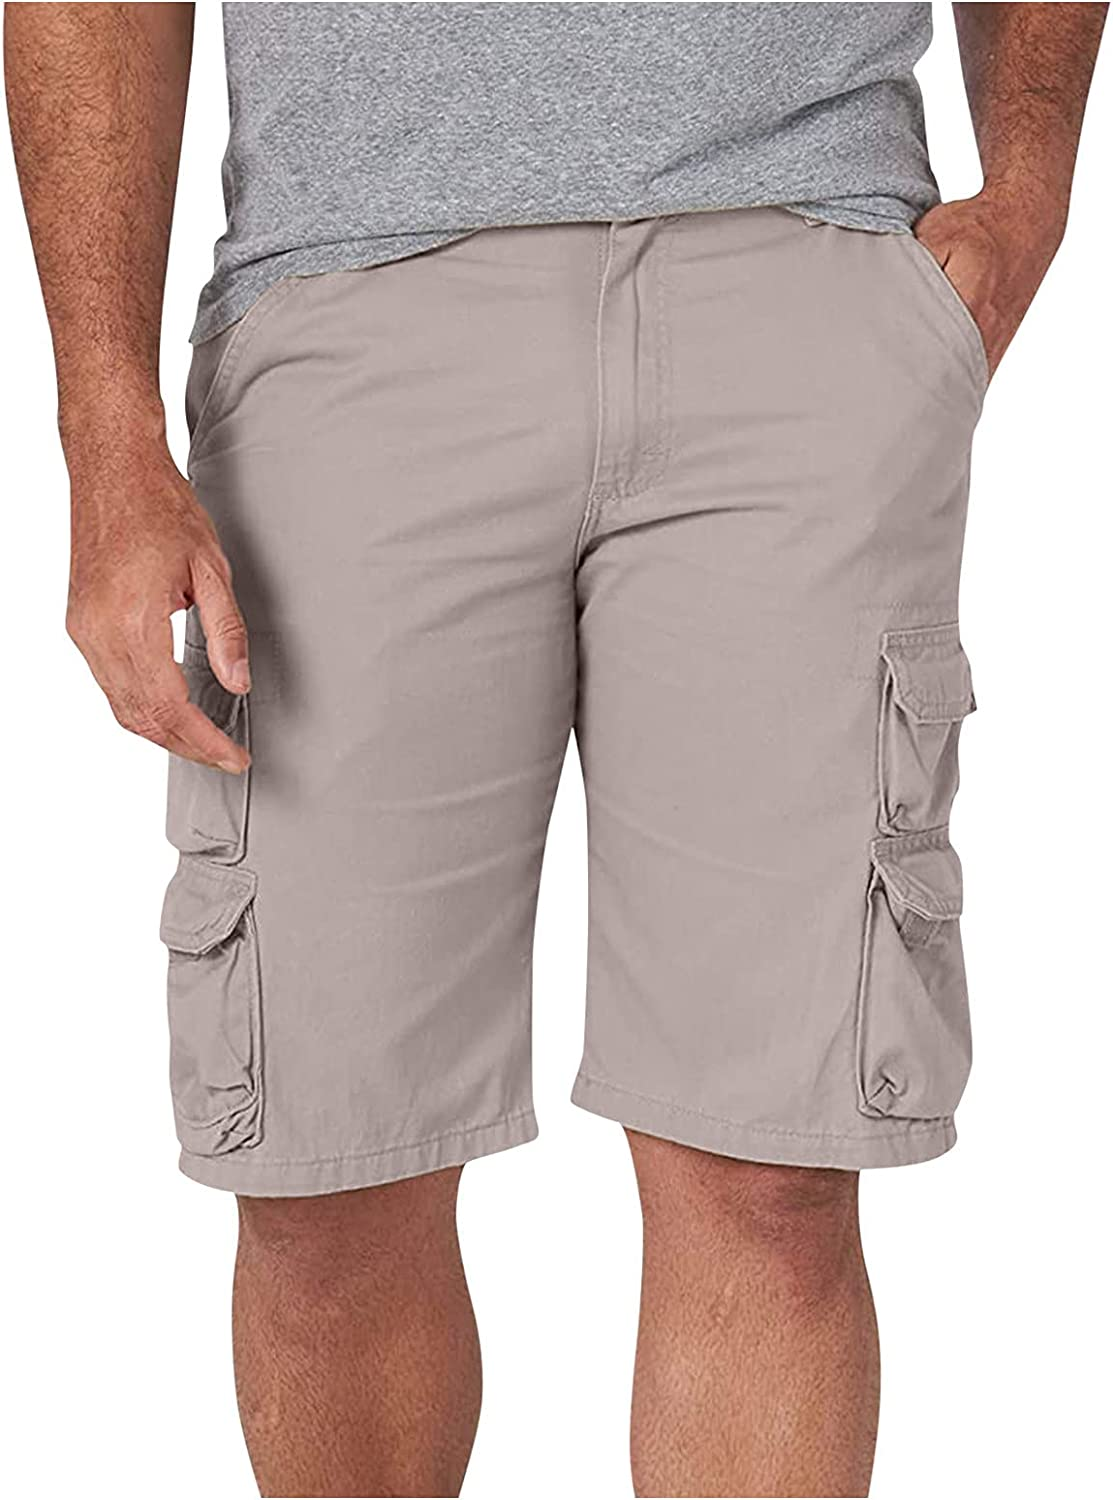 XUNFUN Mens Cargo Shorts Relaxed Fit Multi-Pocket Comfy Outdoor Loose Workout Summer Shorts Twill Cotton Tactical Shorts